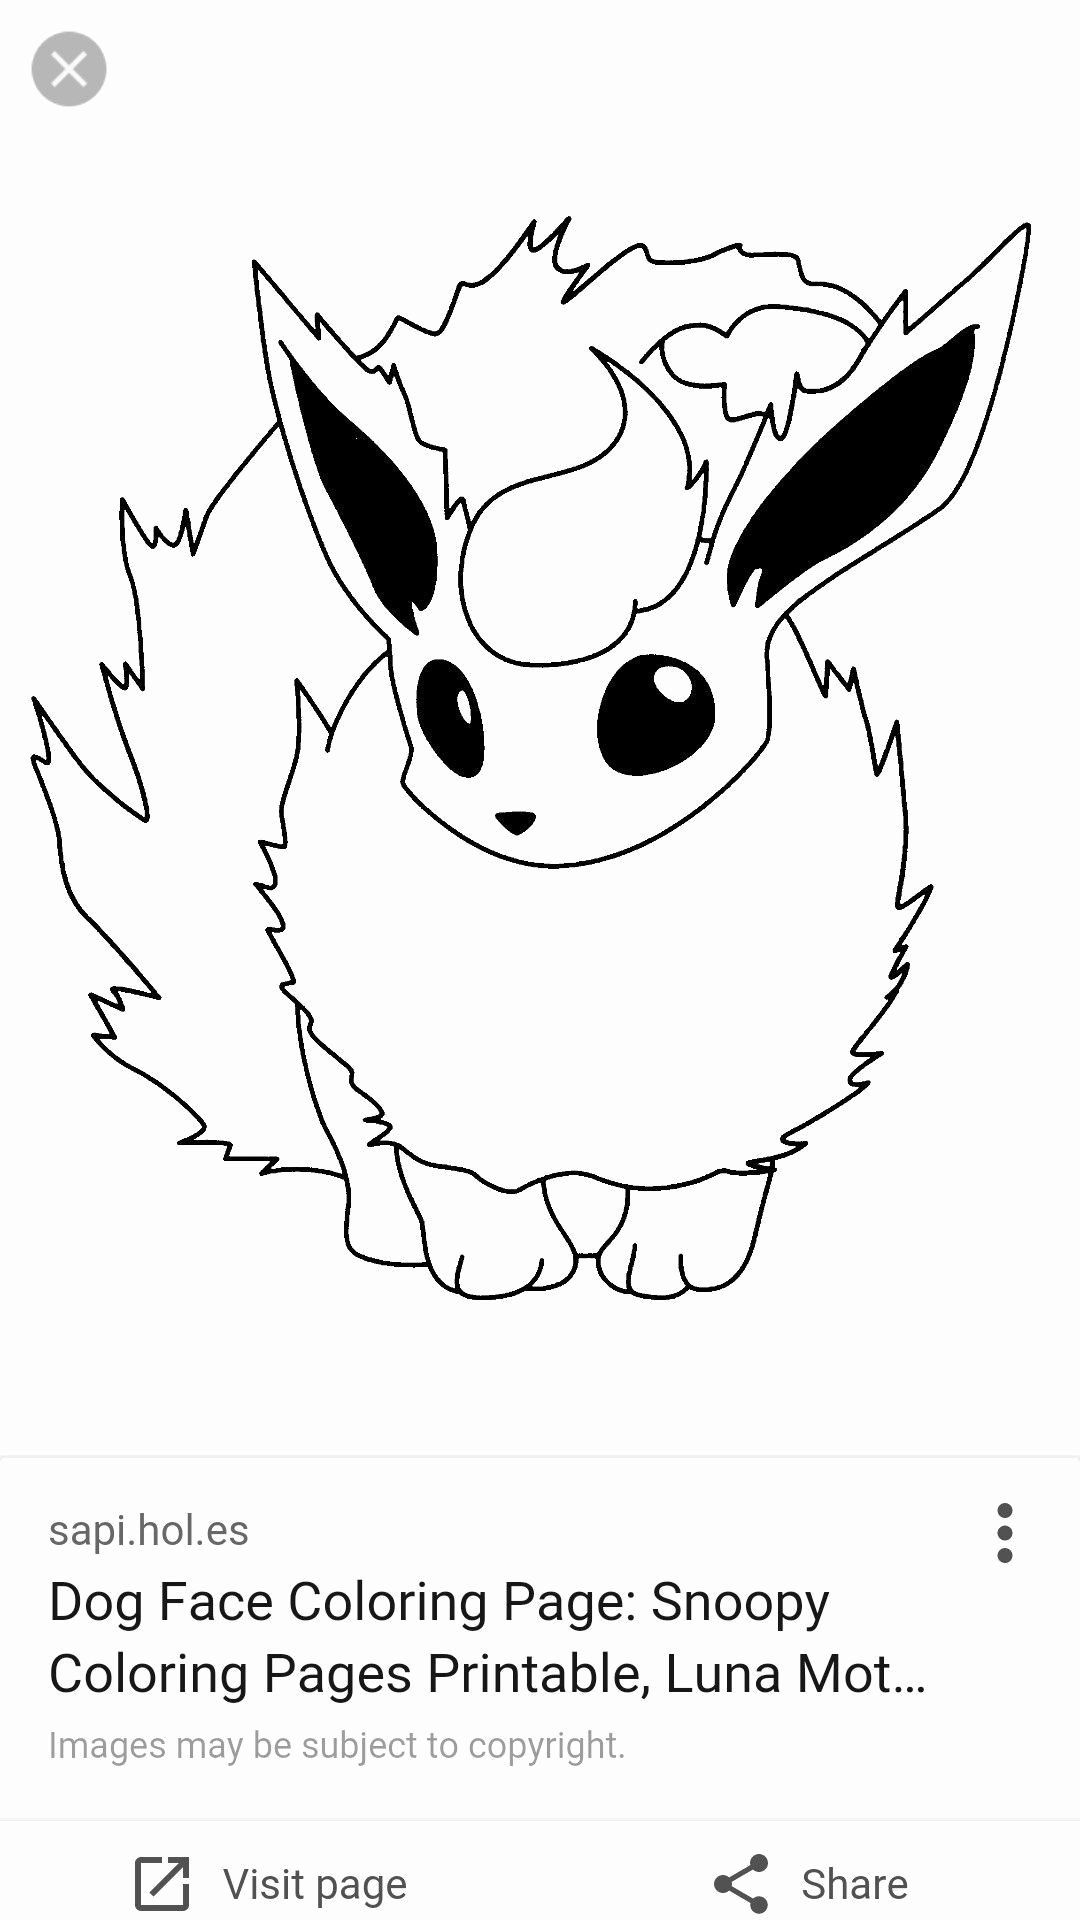 Alphabet Coloring Book Printable Pdf Beautiful Printable Alphabet Coloring Pages Free Printable A Dog Coloring Page Pokemon Coloring Pages Horse Coloring Pages